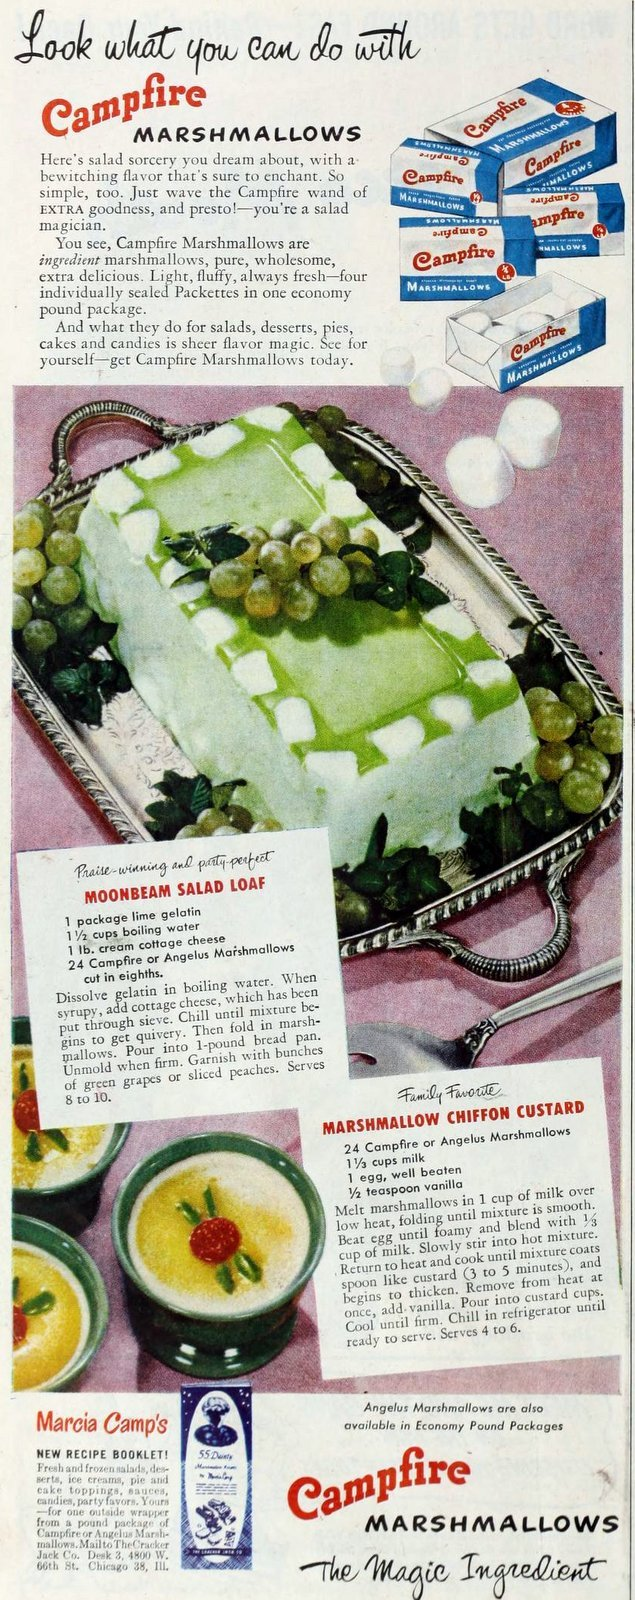 Vintage Campfire marshmallow moonbeam salad loaf recipe from the 1950s